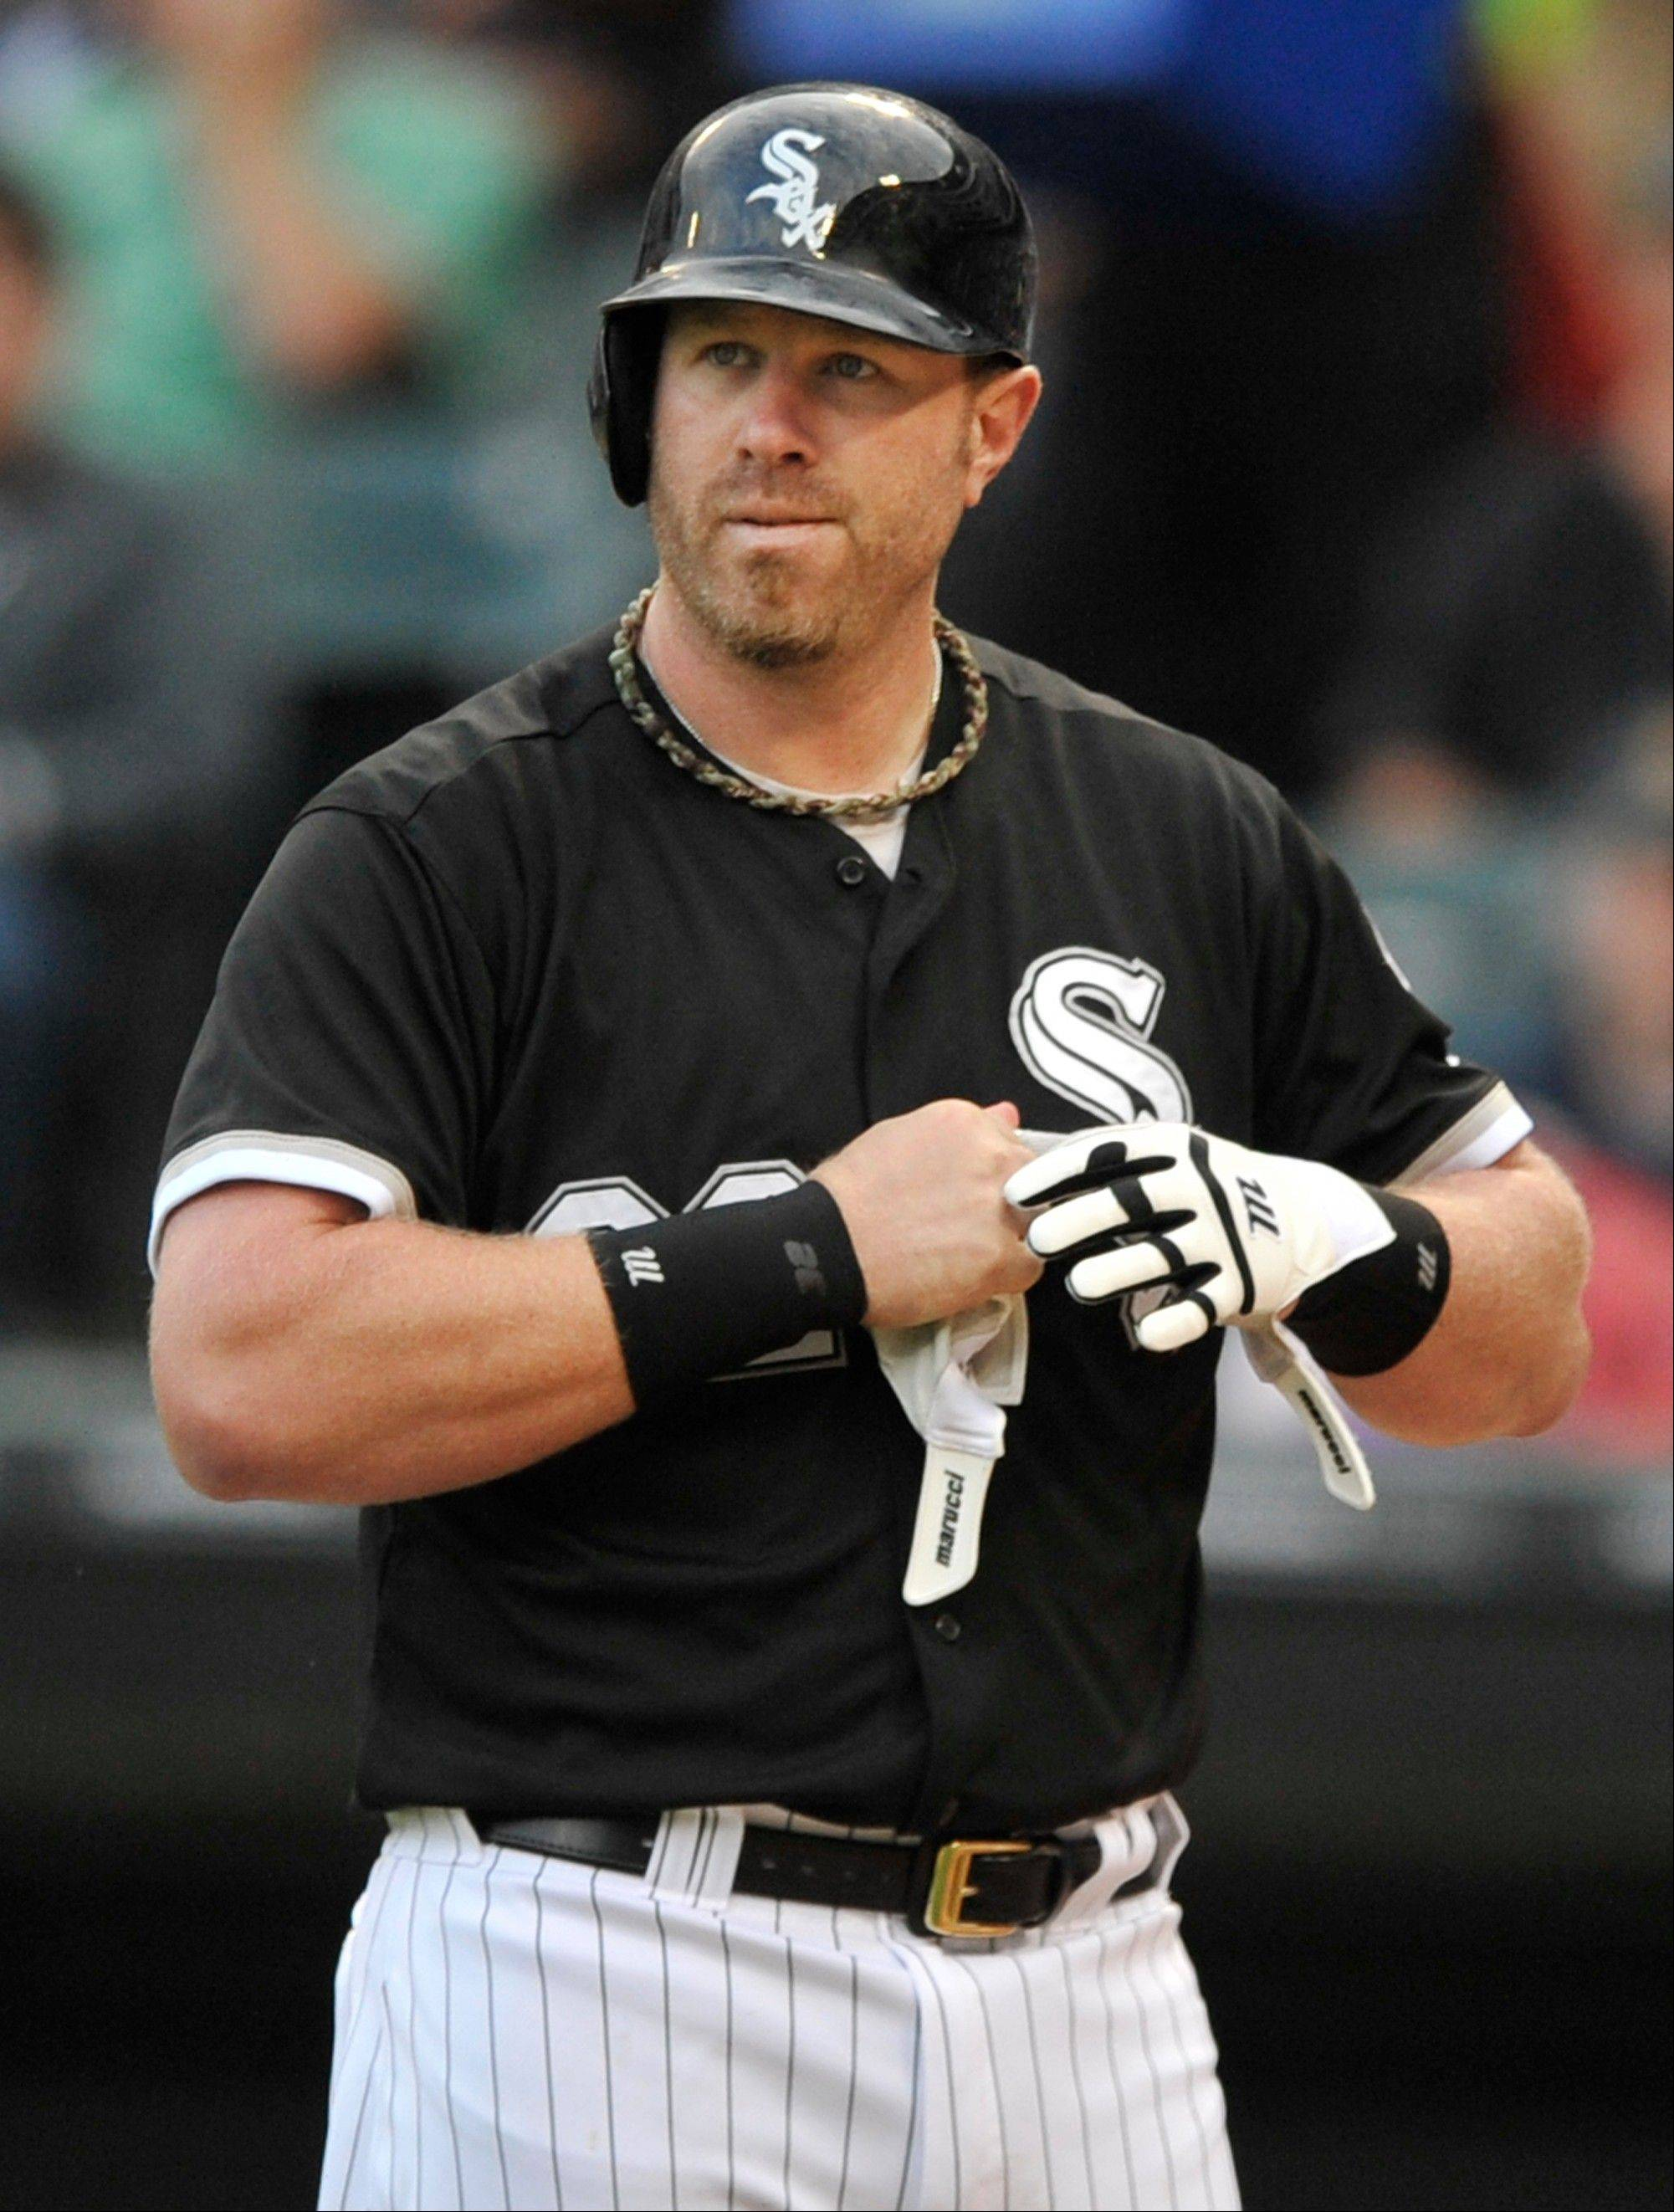 The White Sox's Adam Dunn reacts after striking out during the first inning of a baseball game against the Kansas City Royals Saturday.